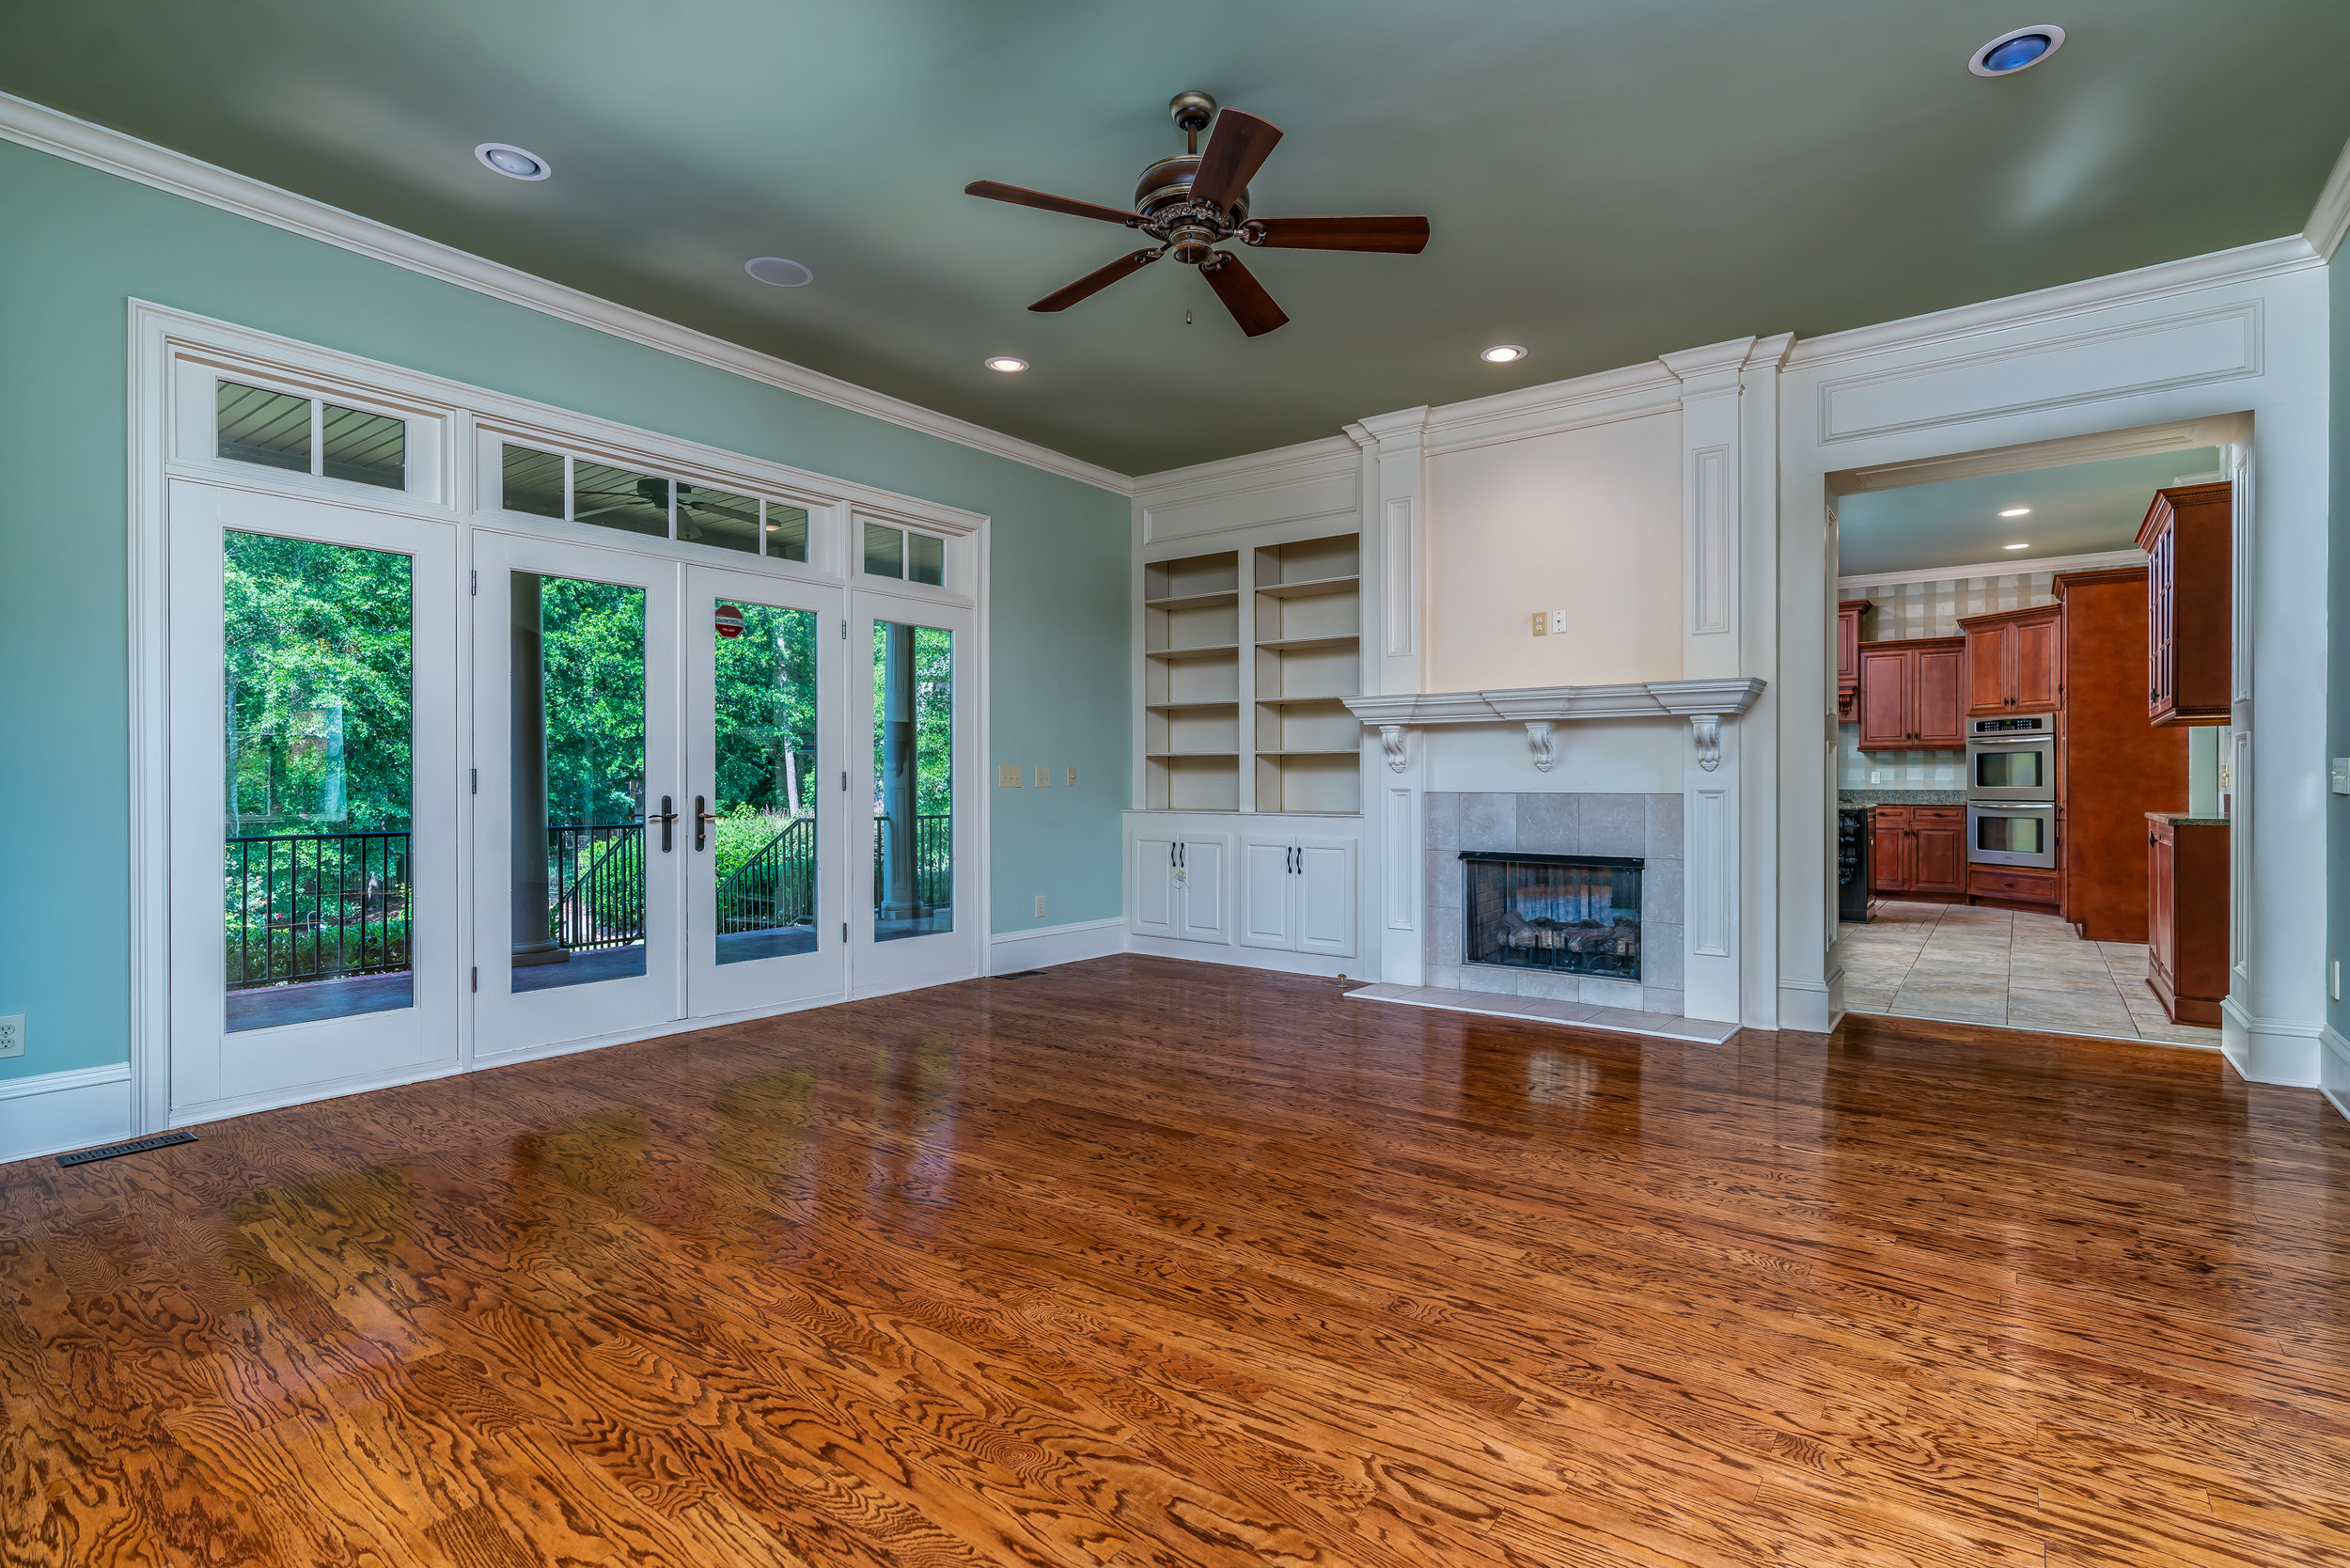 40 Hickory Hollow Court-10.jpg